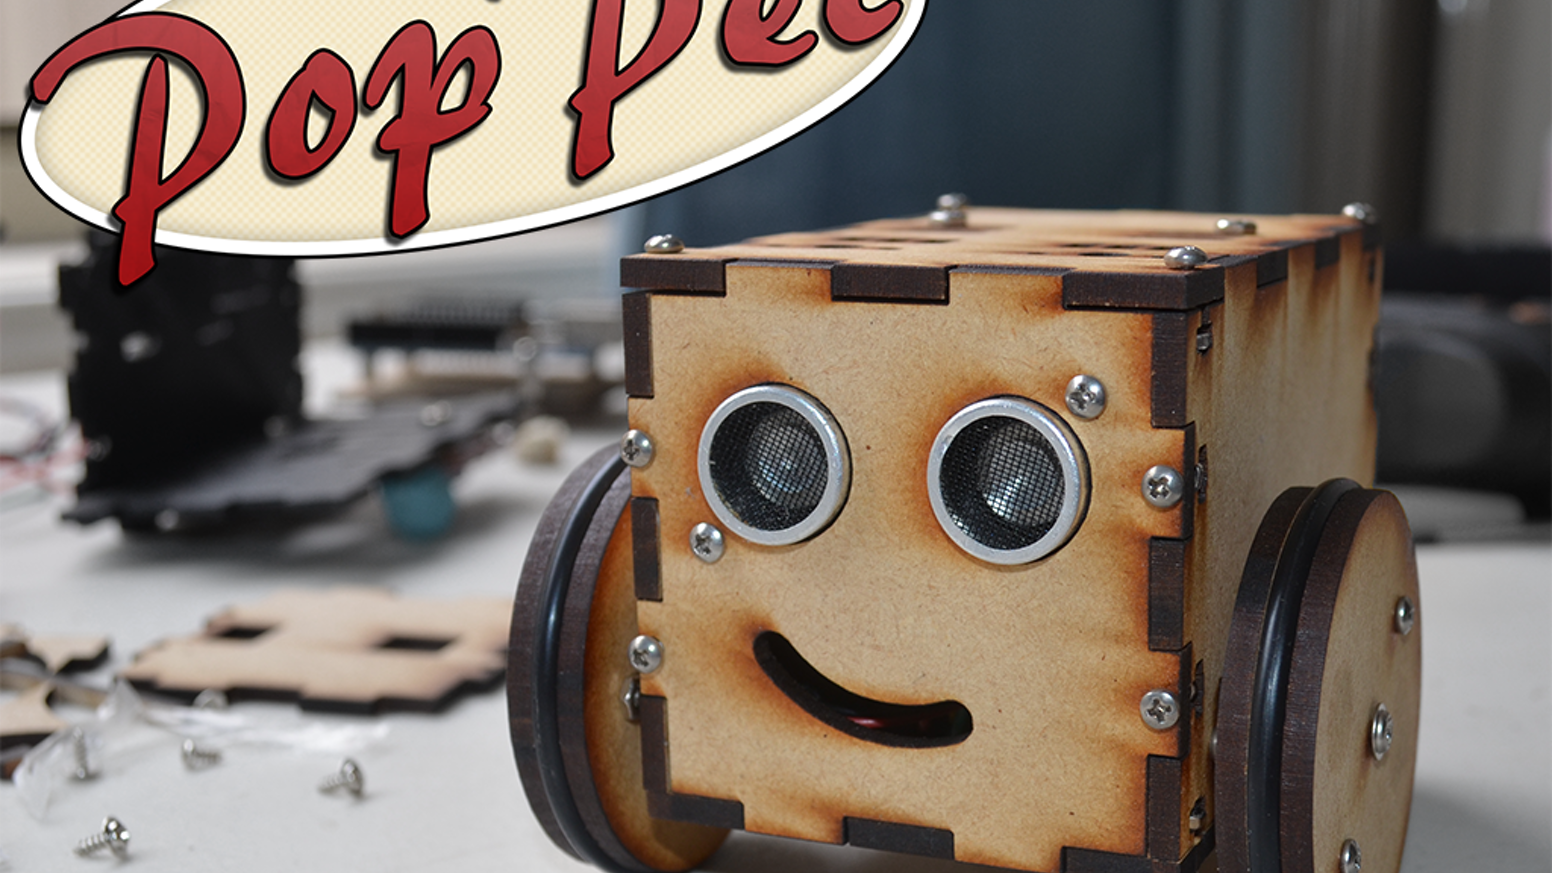 Poppet Diy Arduino Compatible Open Hardware Robot Kit By Jaidyn Circuit Maker Skill Builder Covers 125 Projects With Exciting A Focus On Steam Education Is Expandable Customizable Easy To Assemble Small Fun And Great Intro Into Robotics